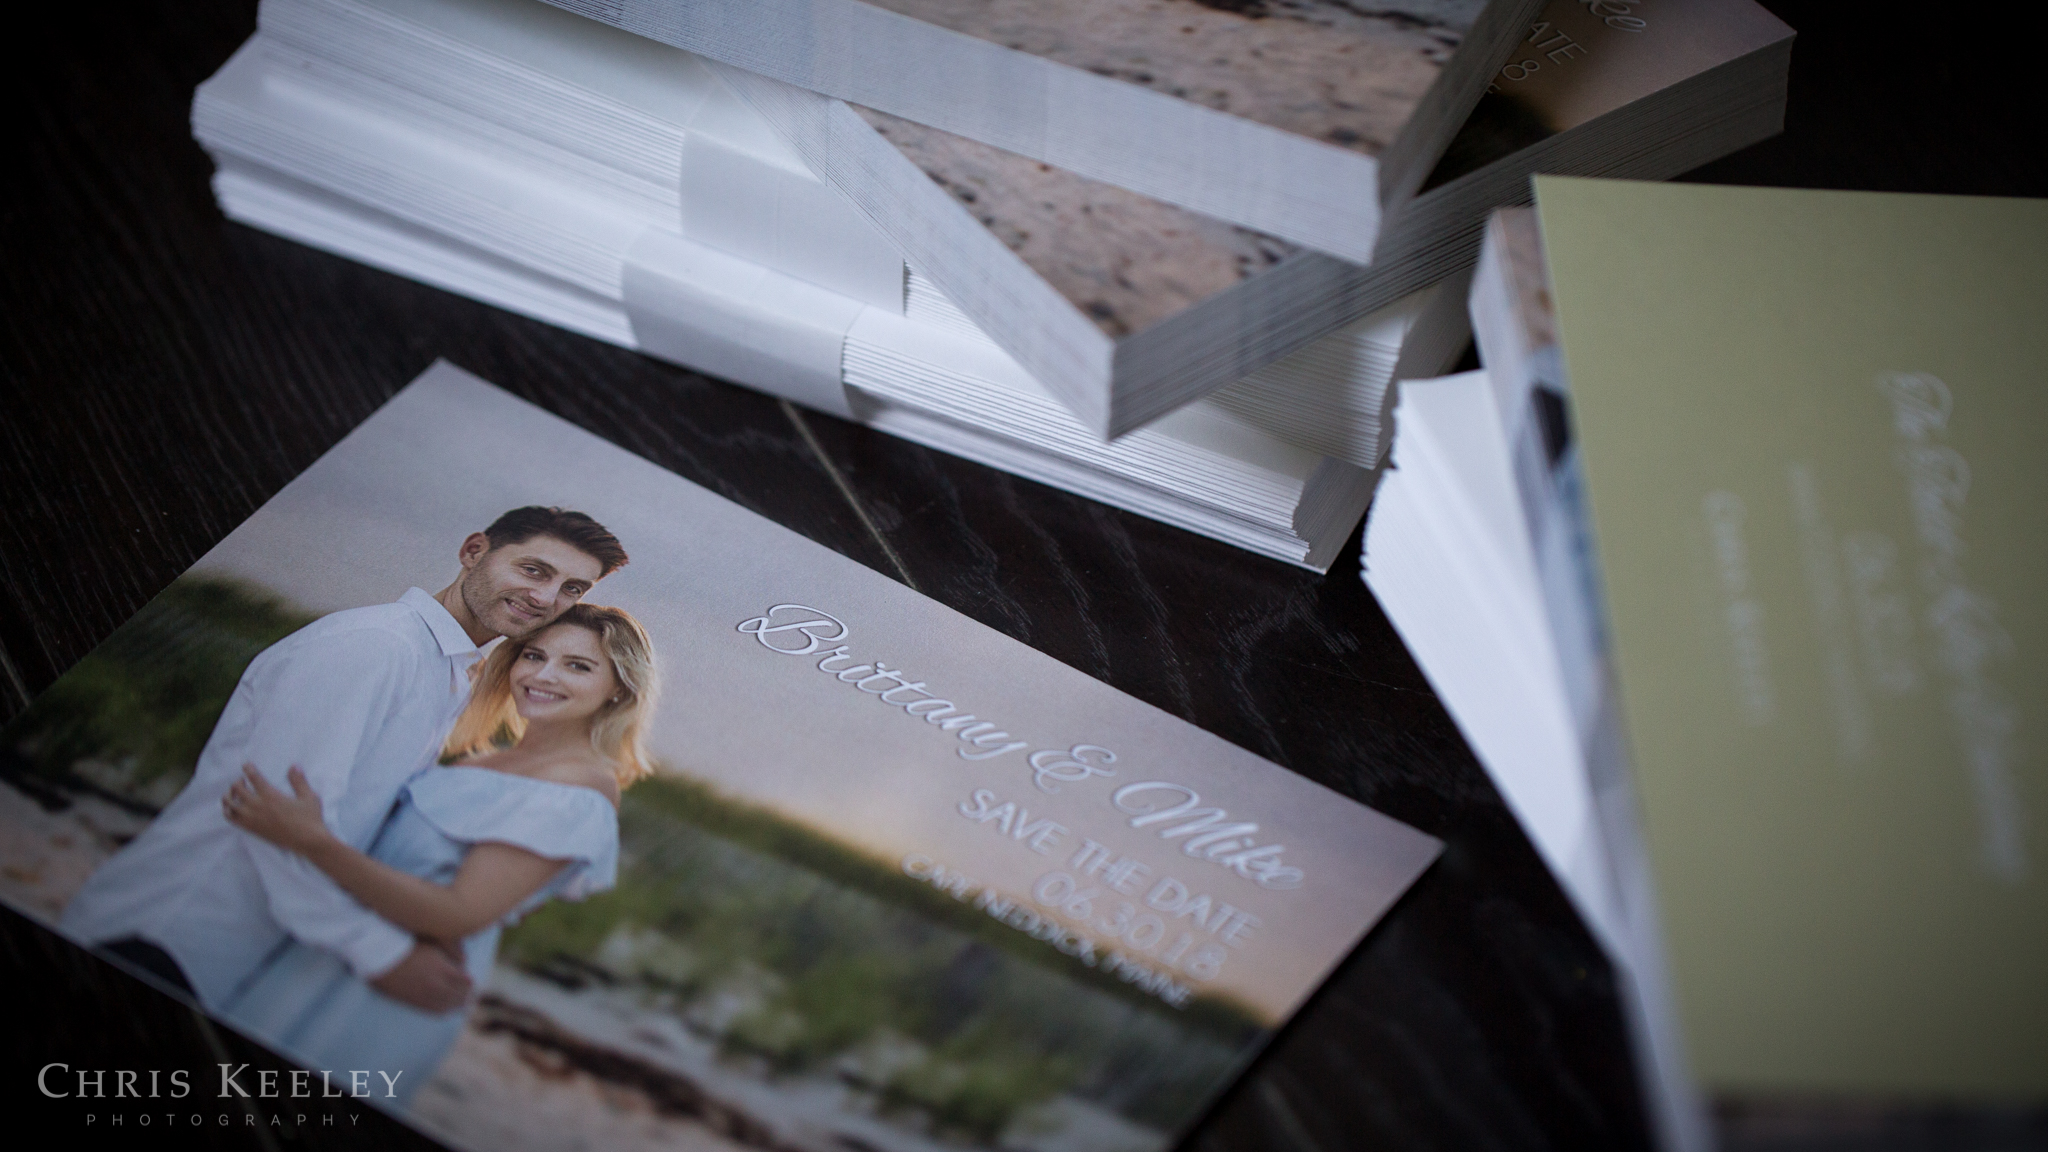 We created clean, modern, stylish Save the Date cards to announce their wedding.